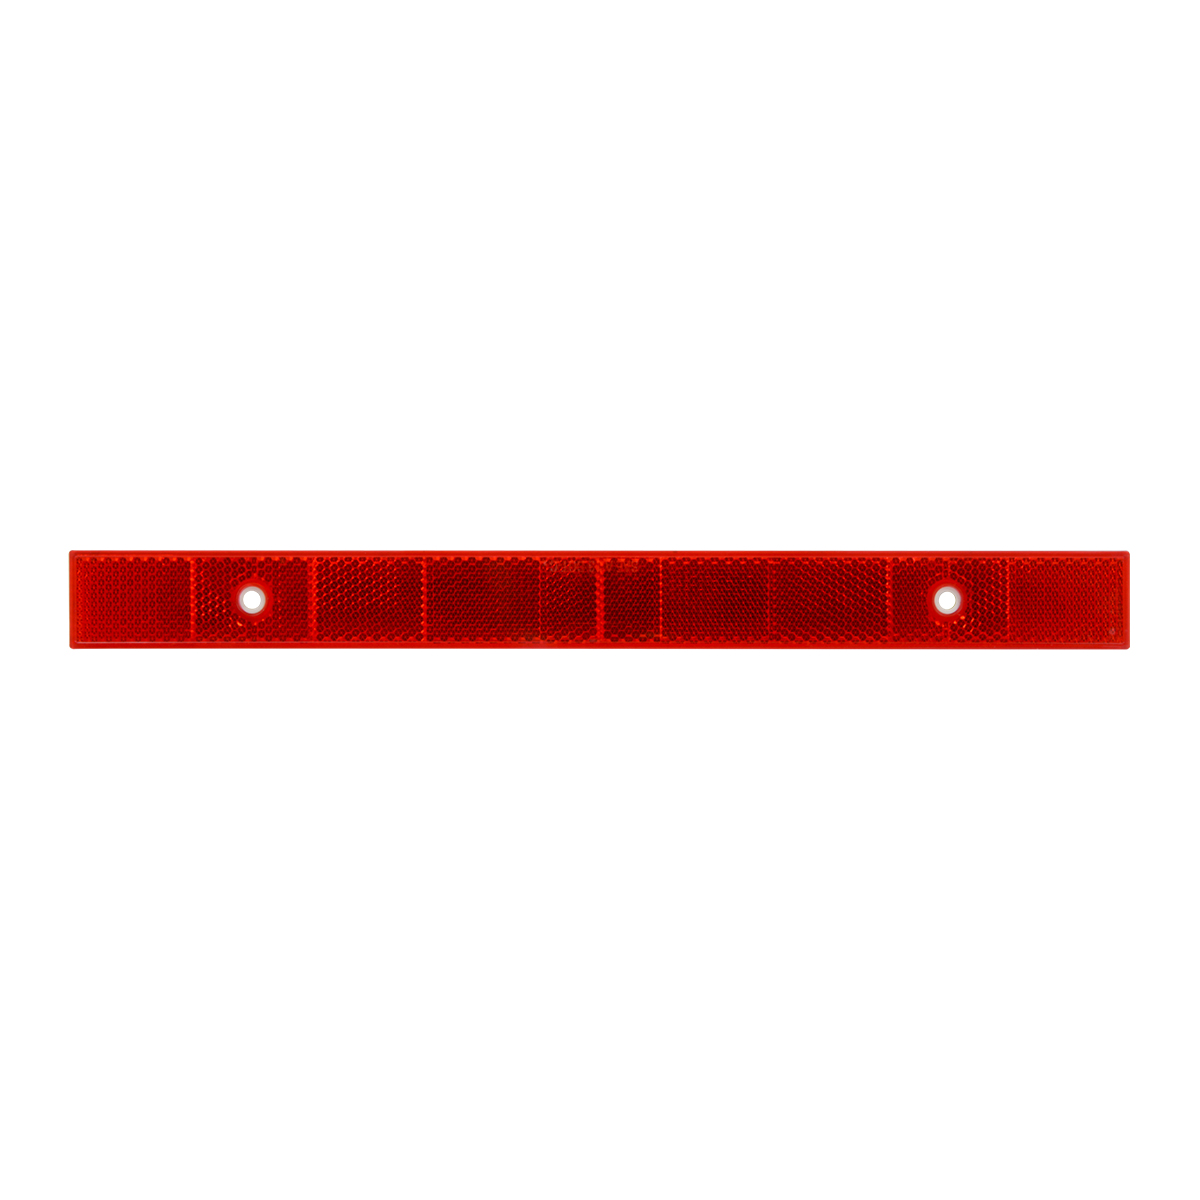 80866 Stick-On Reflector Strip w/ Adhesive Backing & 2 Screw Mount